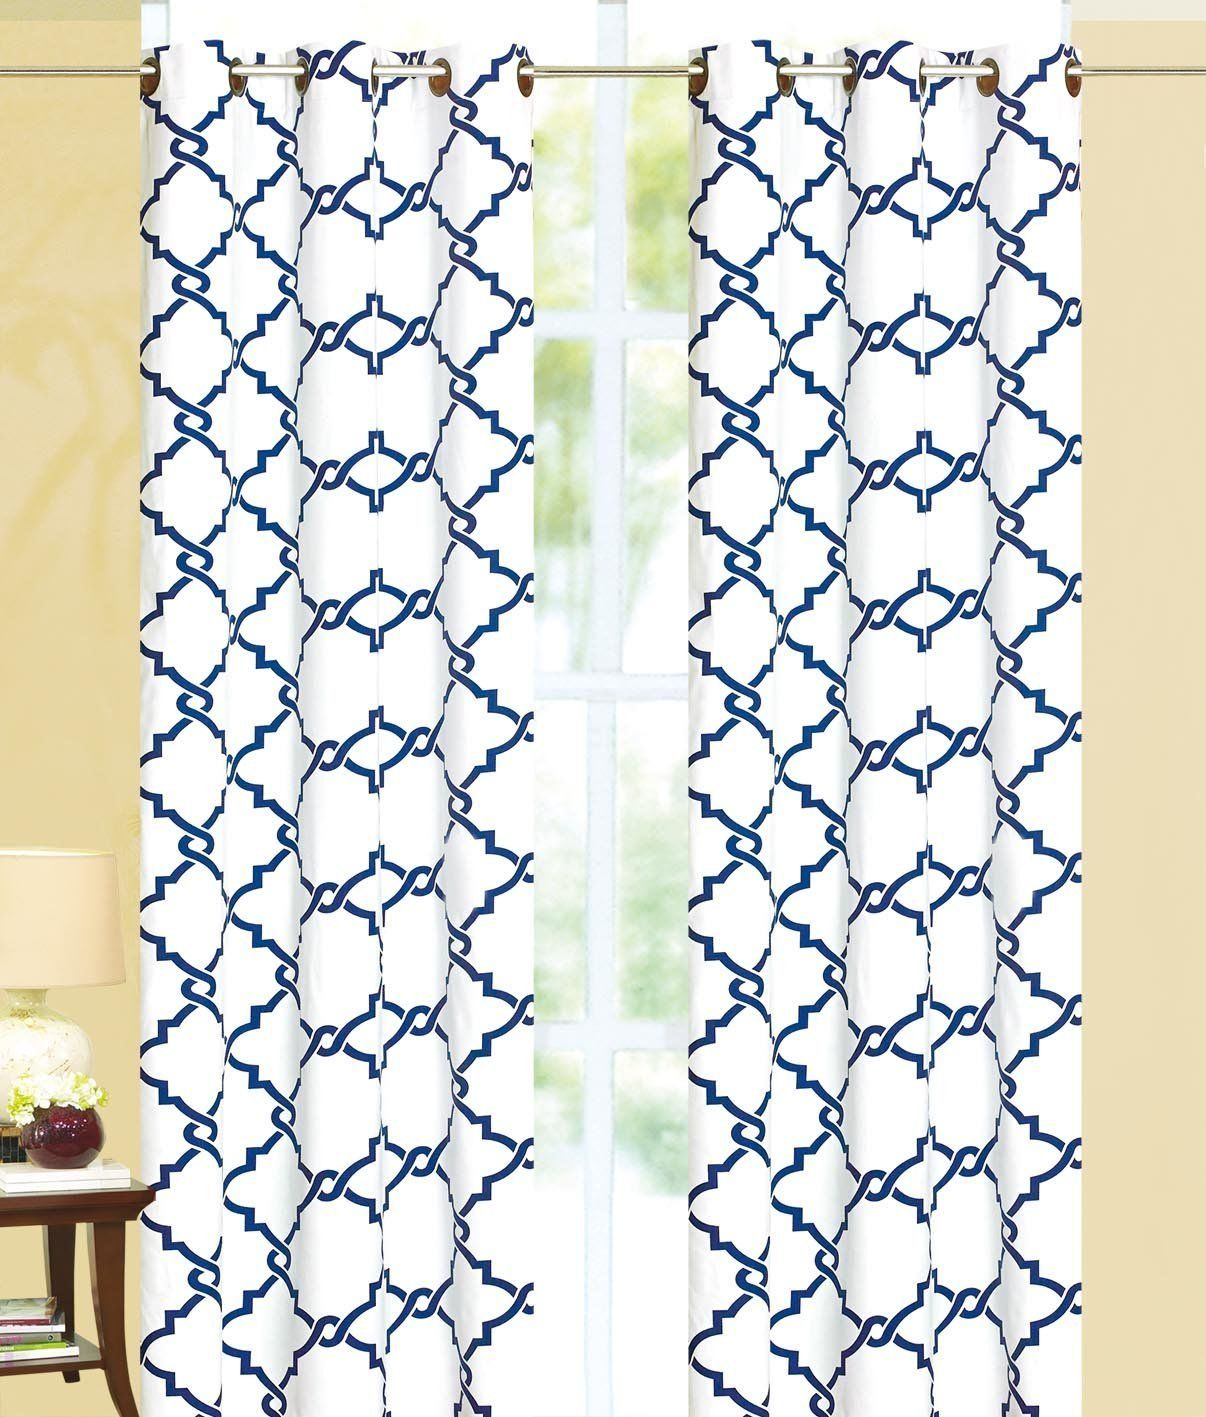 Geometric 100% Thermal Blackout Grommet Insulated Curtain Panel - Navy Blue